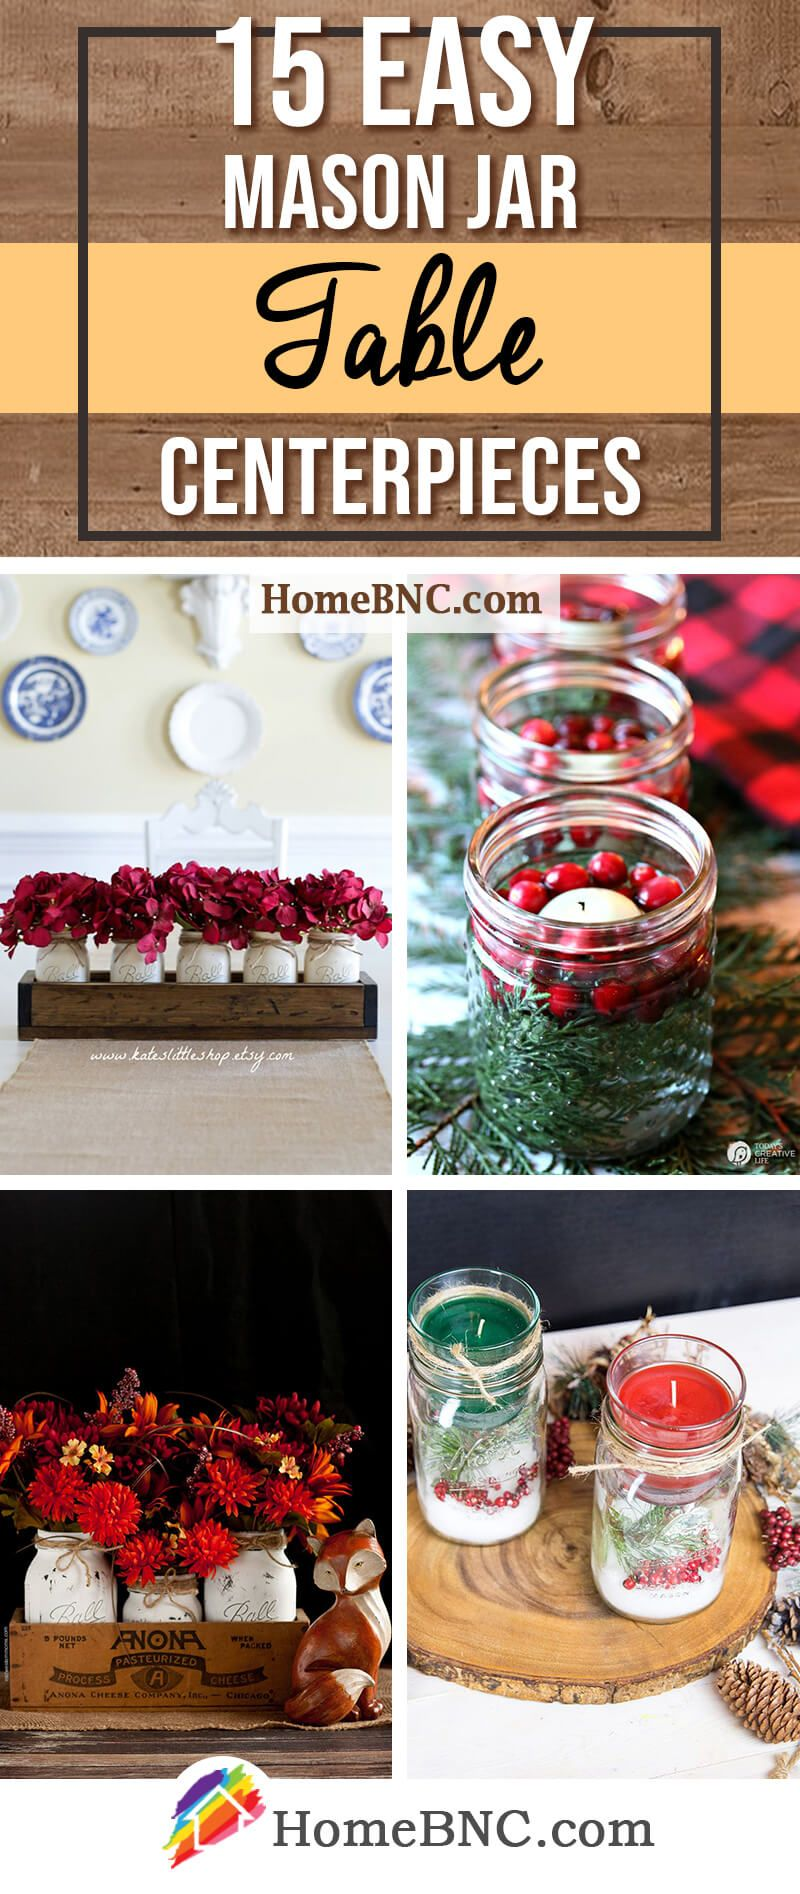 15 Thrifty Mason Jar Table Decorations And Centerpieces That Look Simply Amazing Dining Table Decor Centerpiece Christmas Mason Jars Christmas Jars